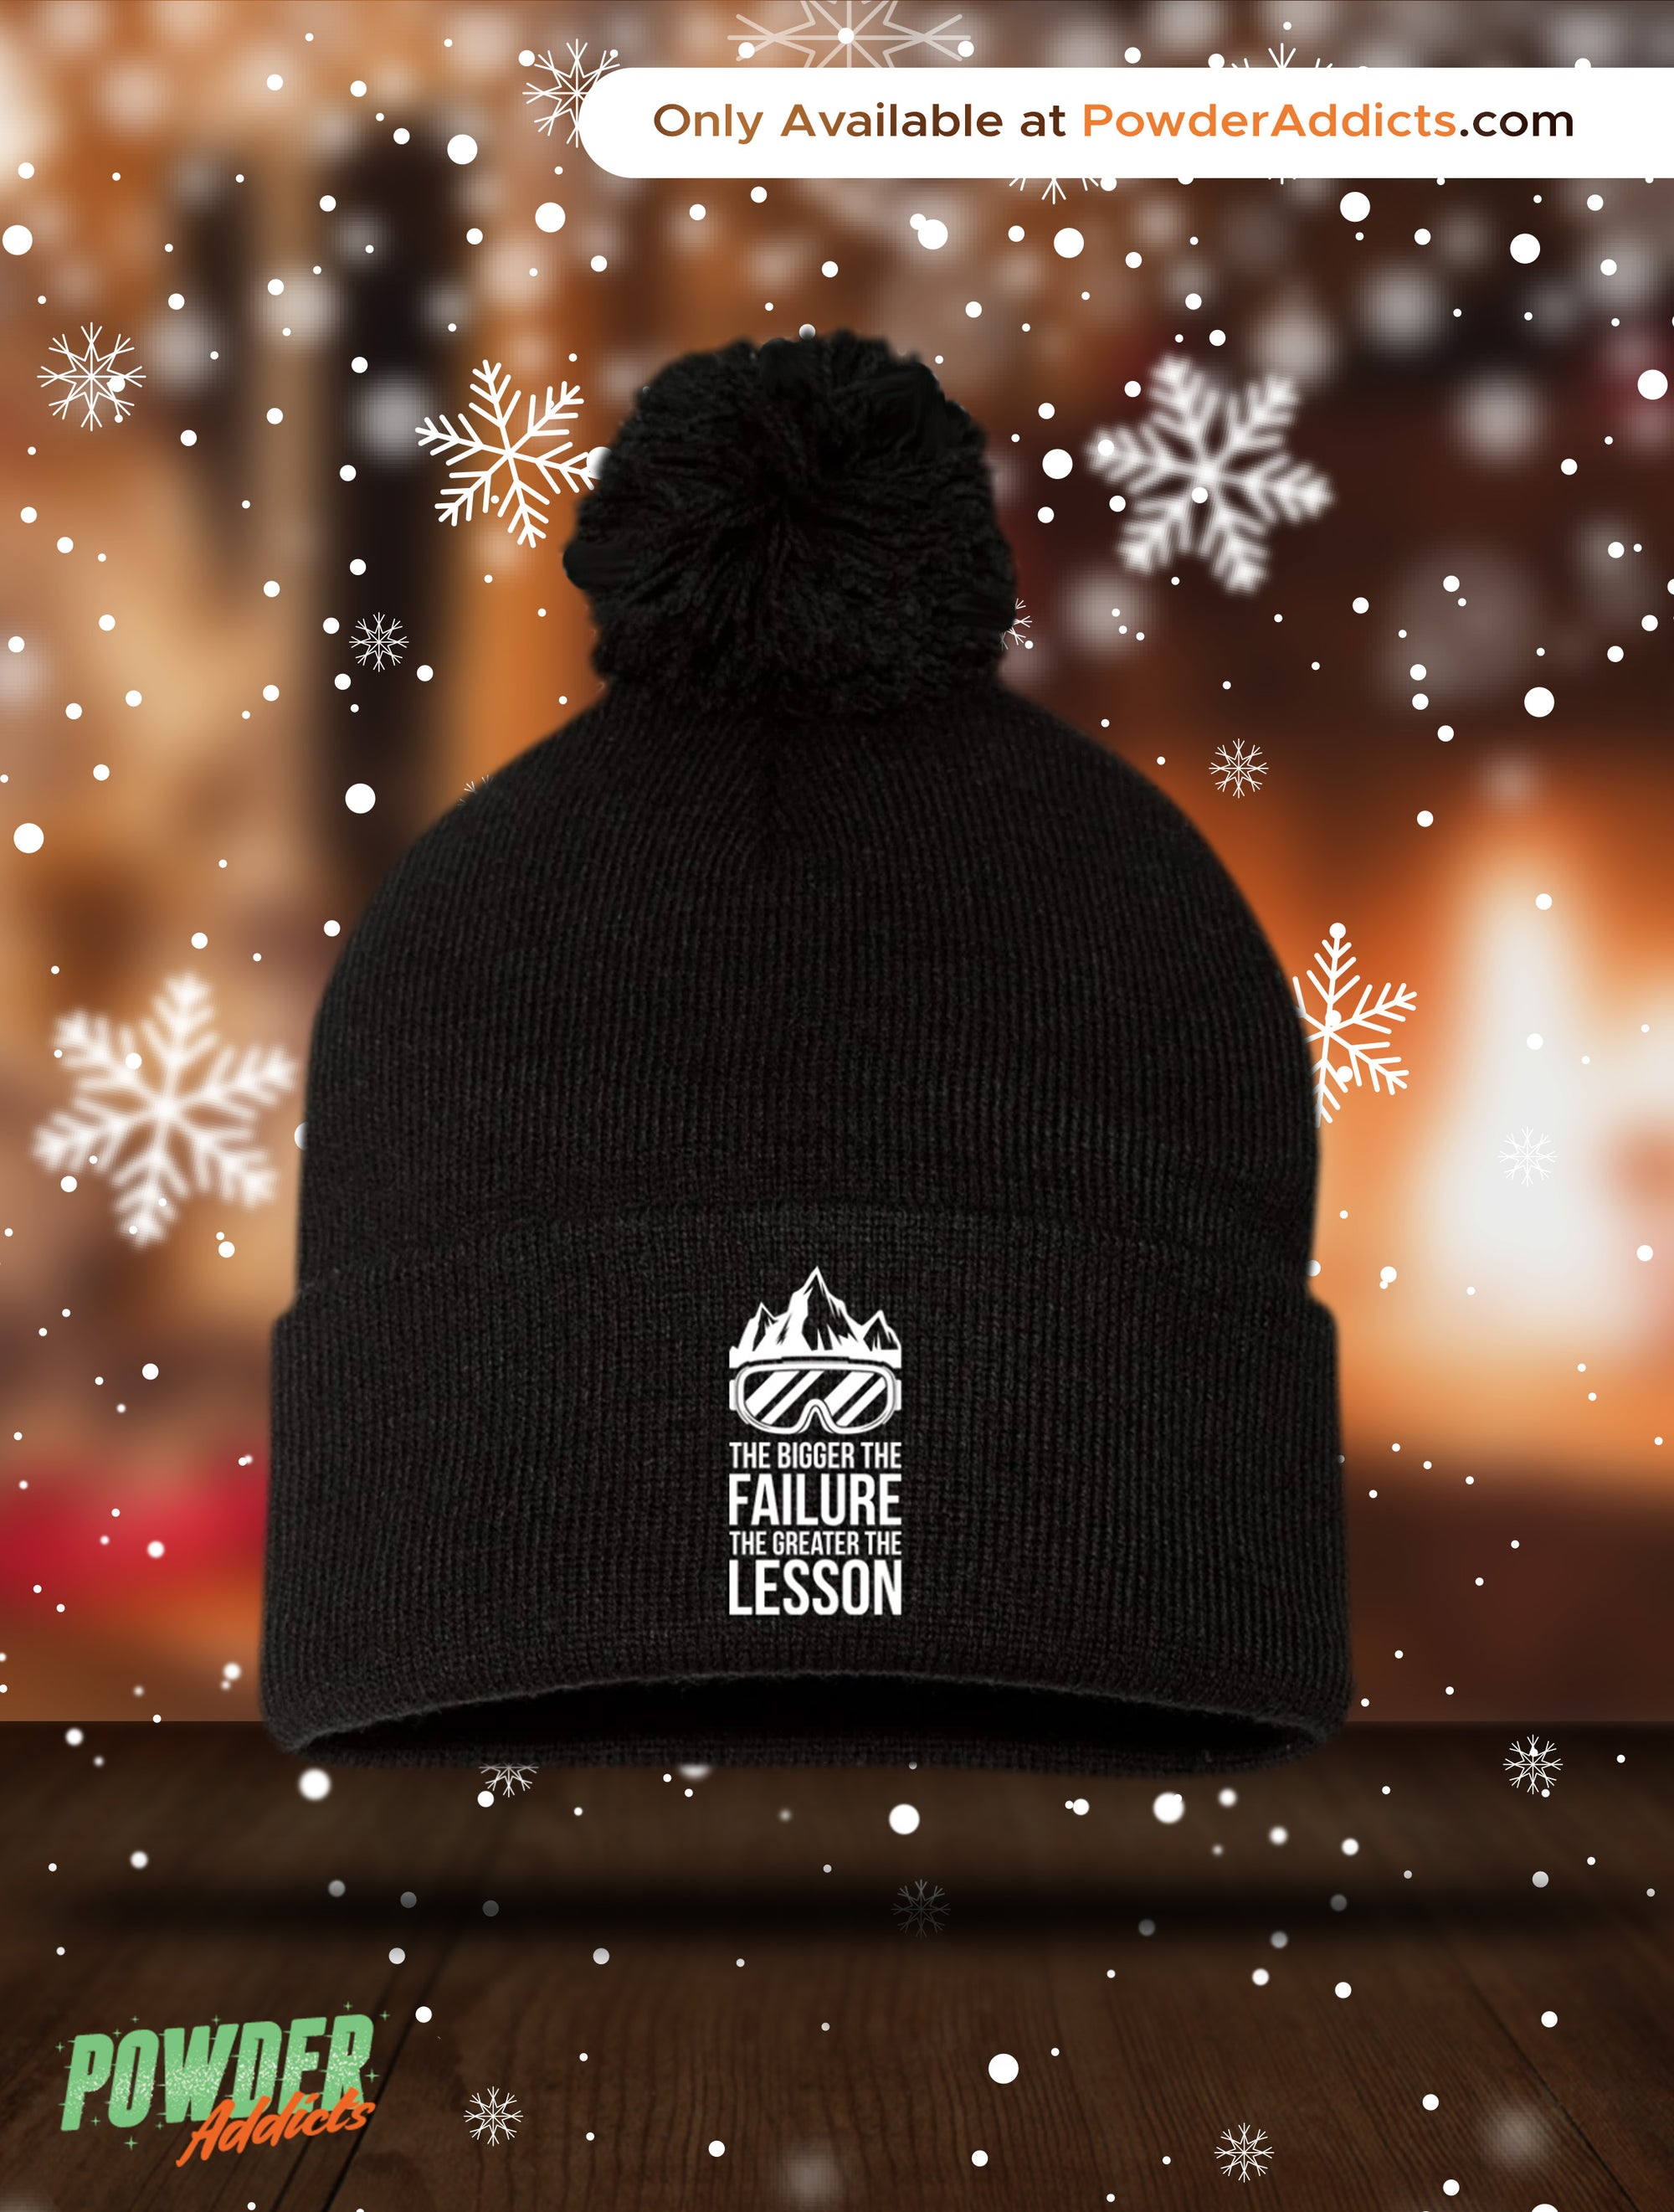 The Bigger The Failure The Greater The Lesson Pom Pom Knit Cap - Powderaddicts